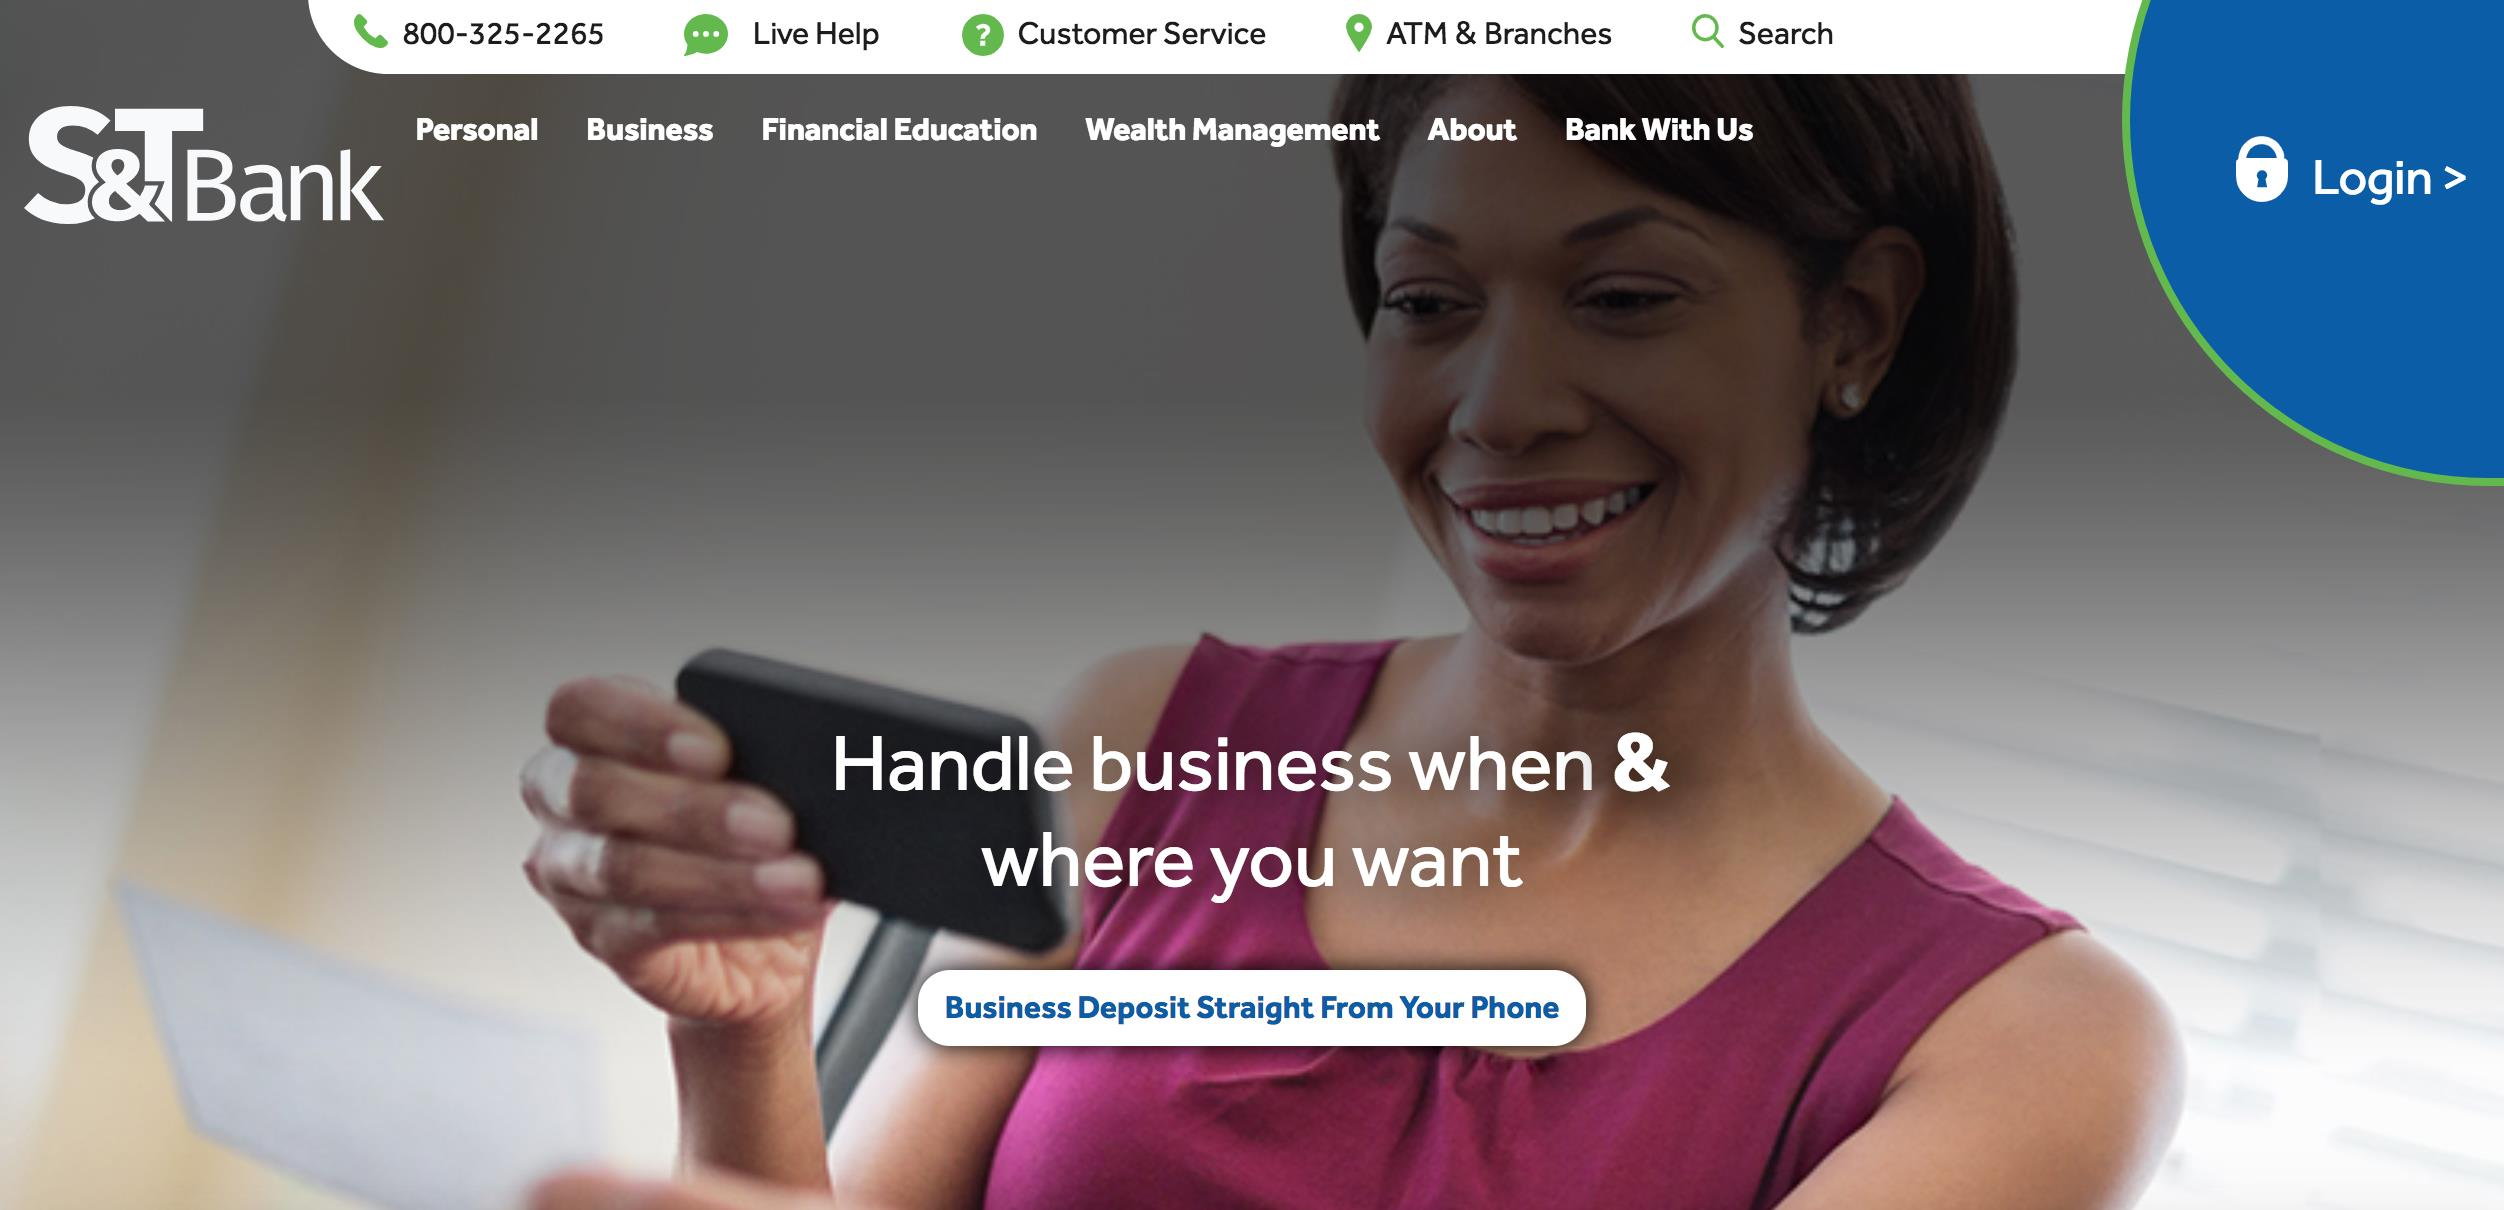 S&T Bank Website Redesign